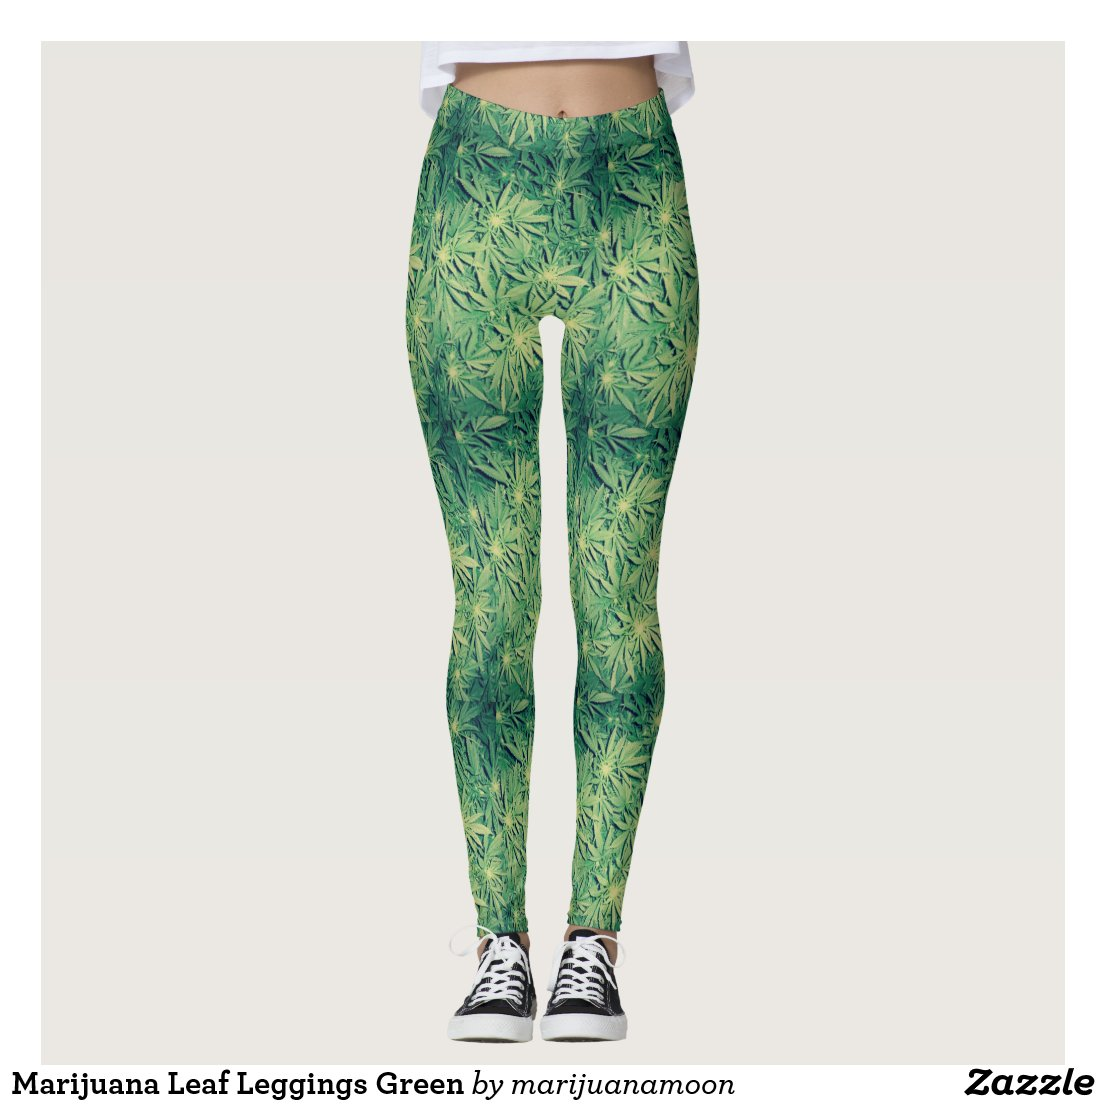 Marijuana Leaf Leggings Green